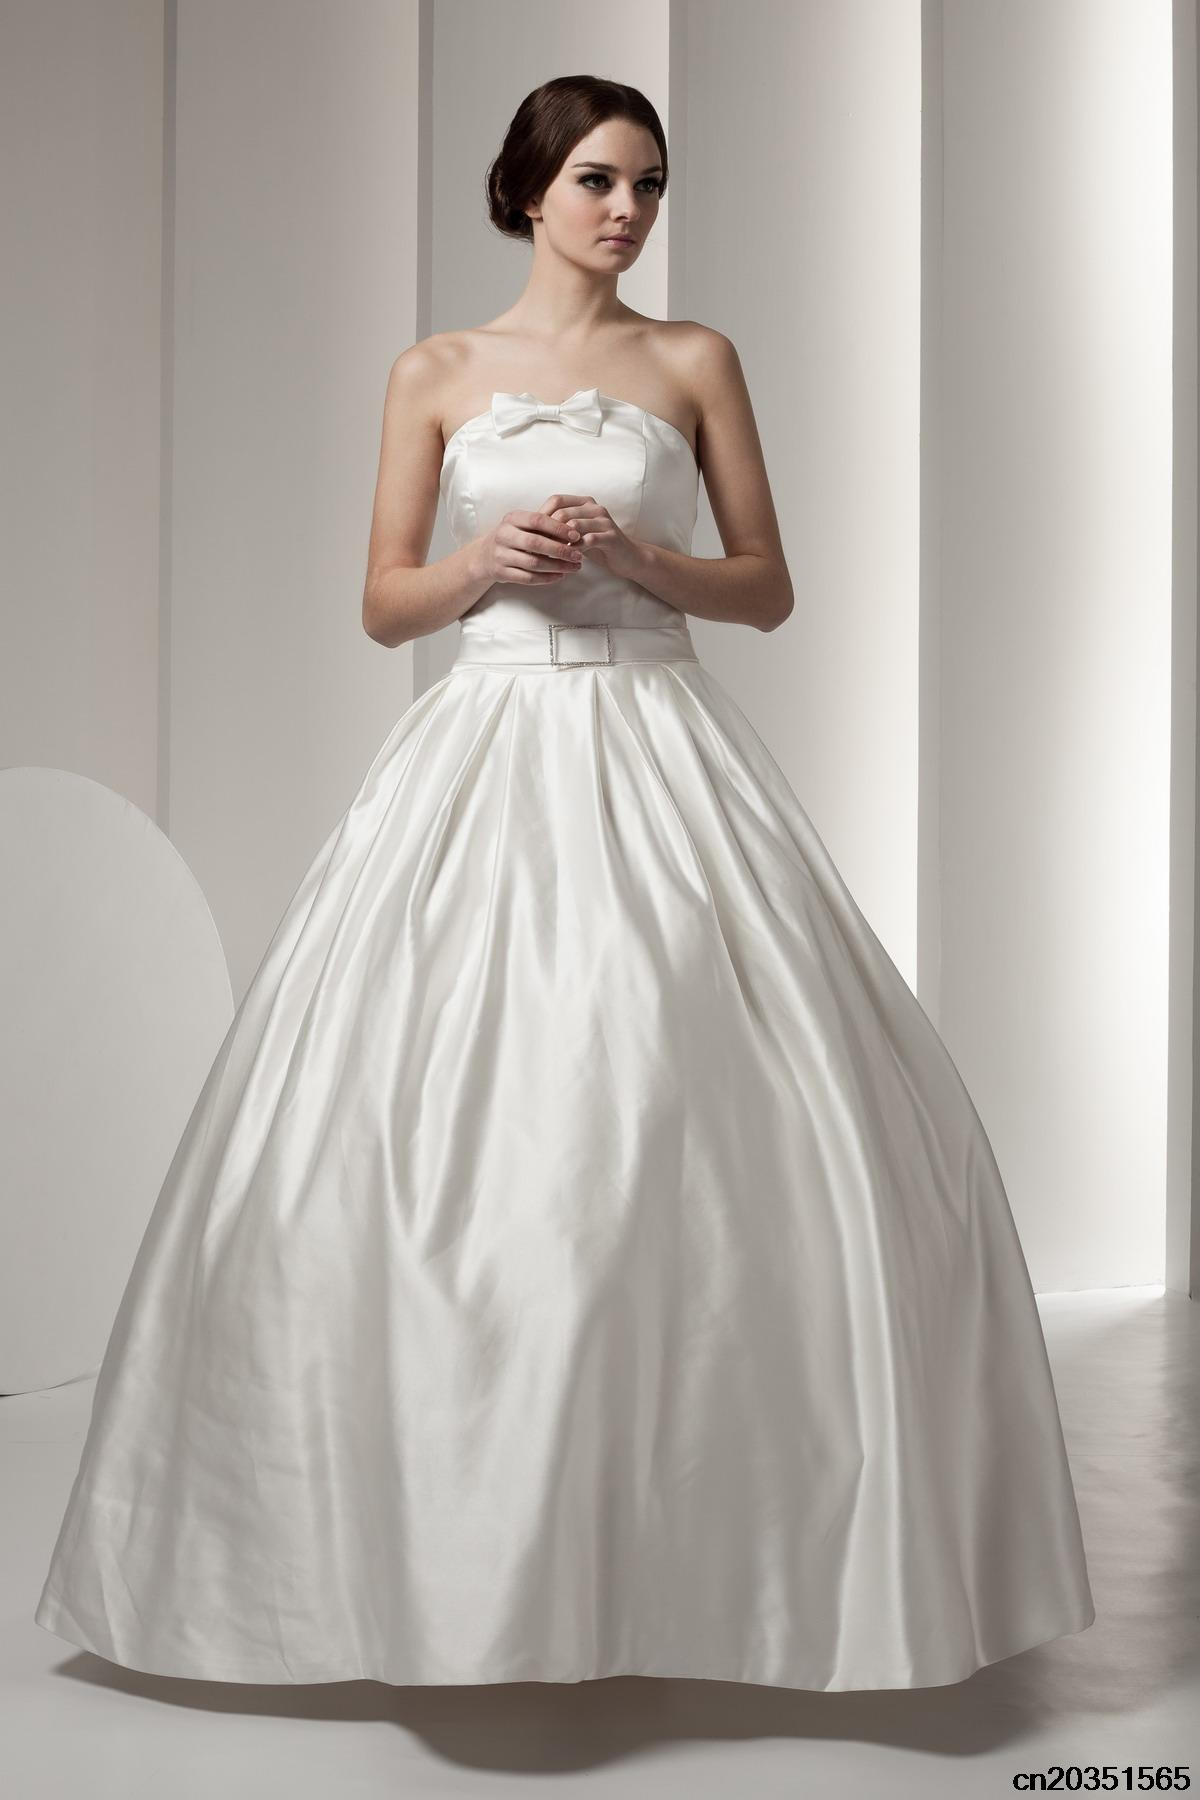 satin cute bridal wedding gowns with ankle Length,strapless Beaded ...